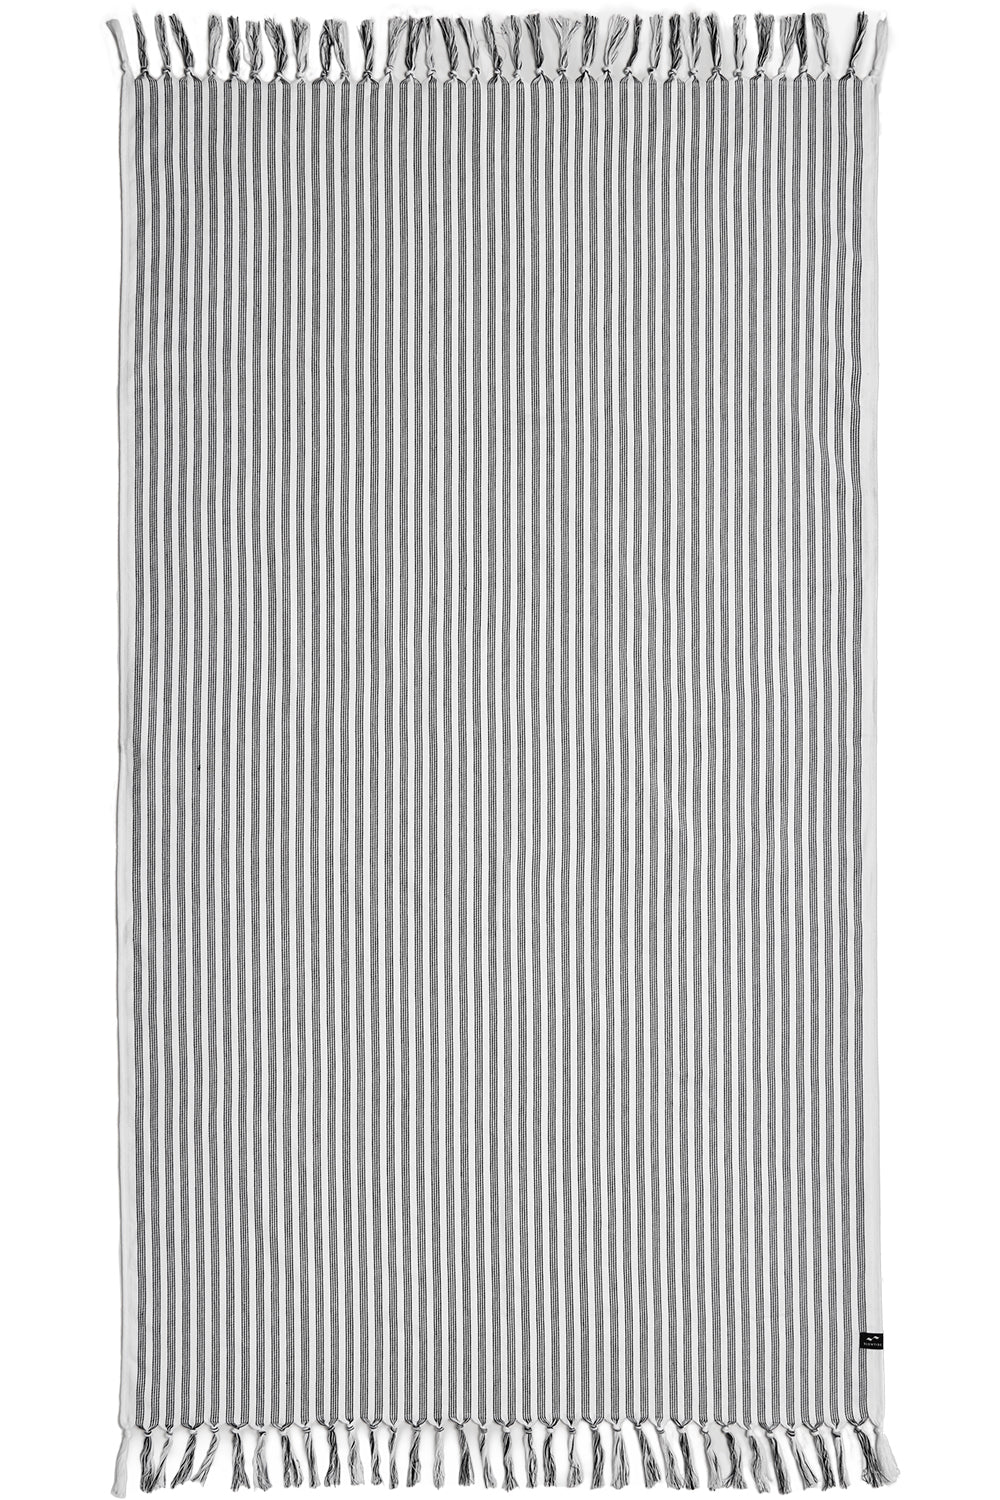 Slowtide Turkish Beach Towel in Koko